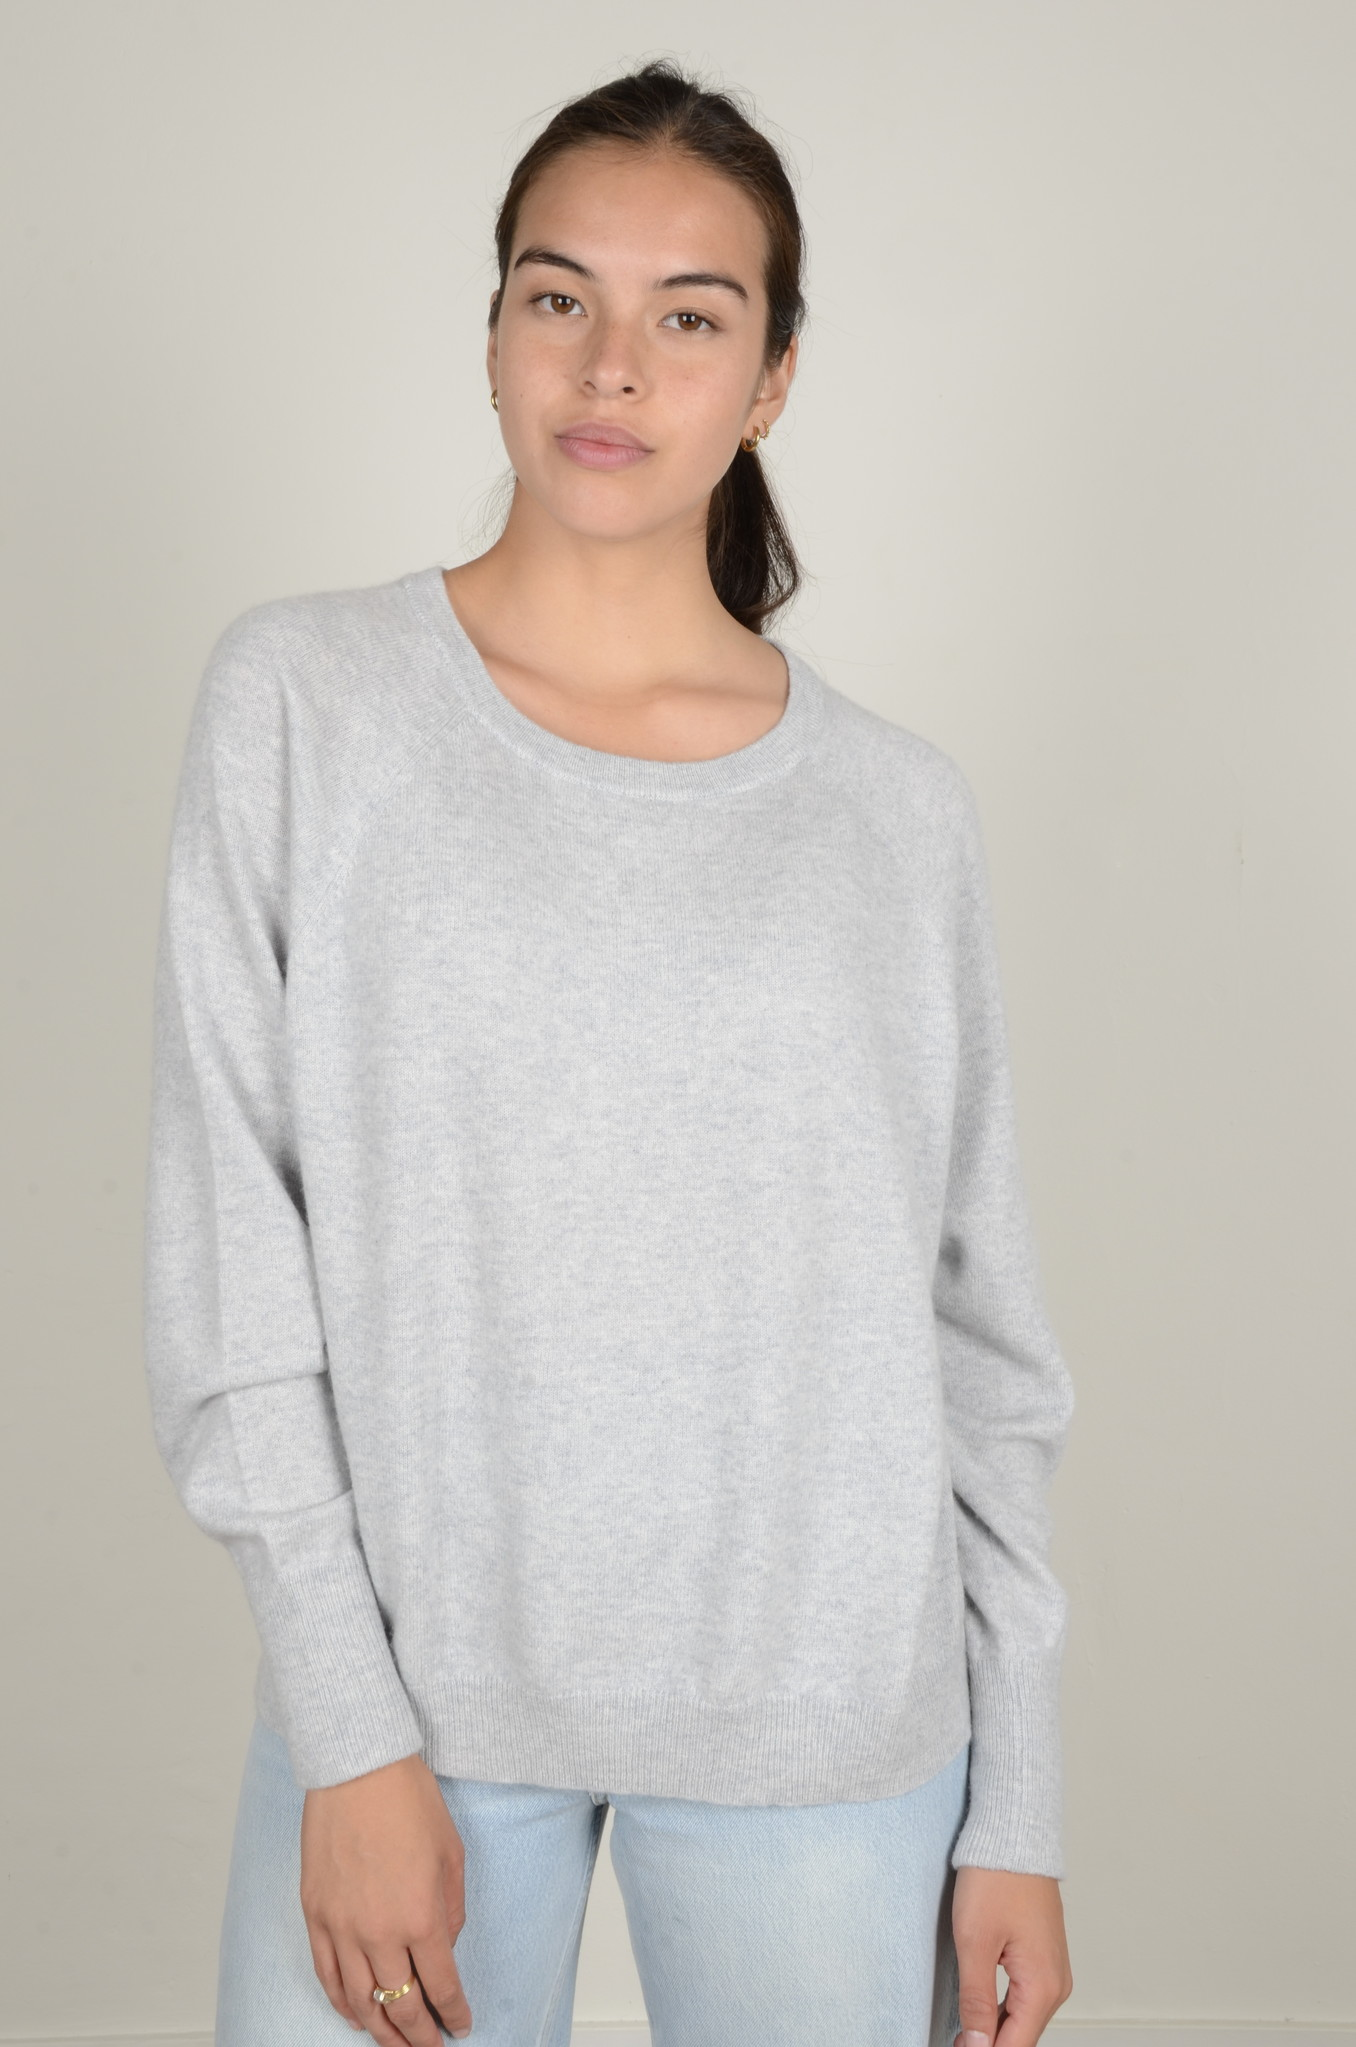 CAROLINA CASHMERE KNIT IN LIGHT GREY-6